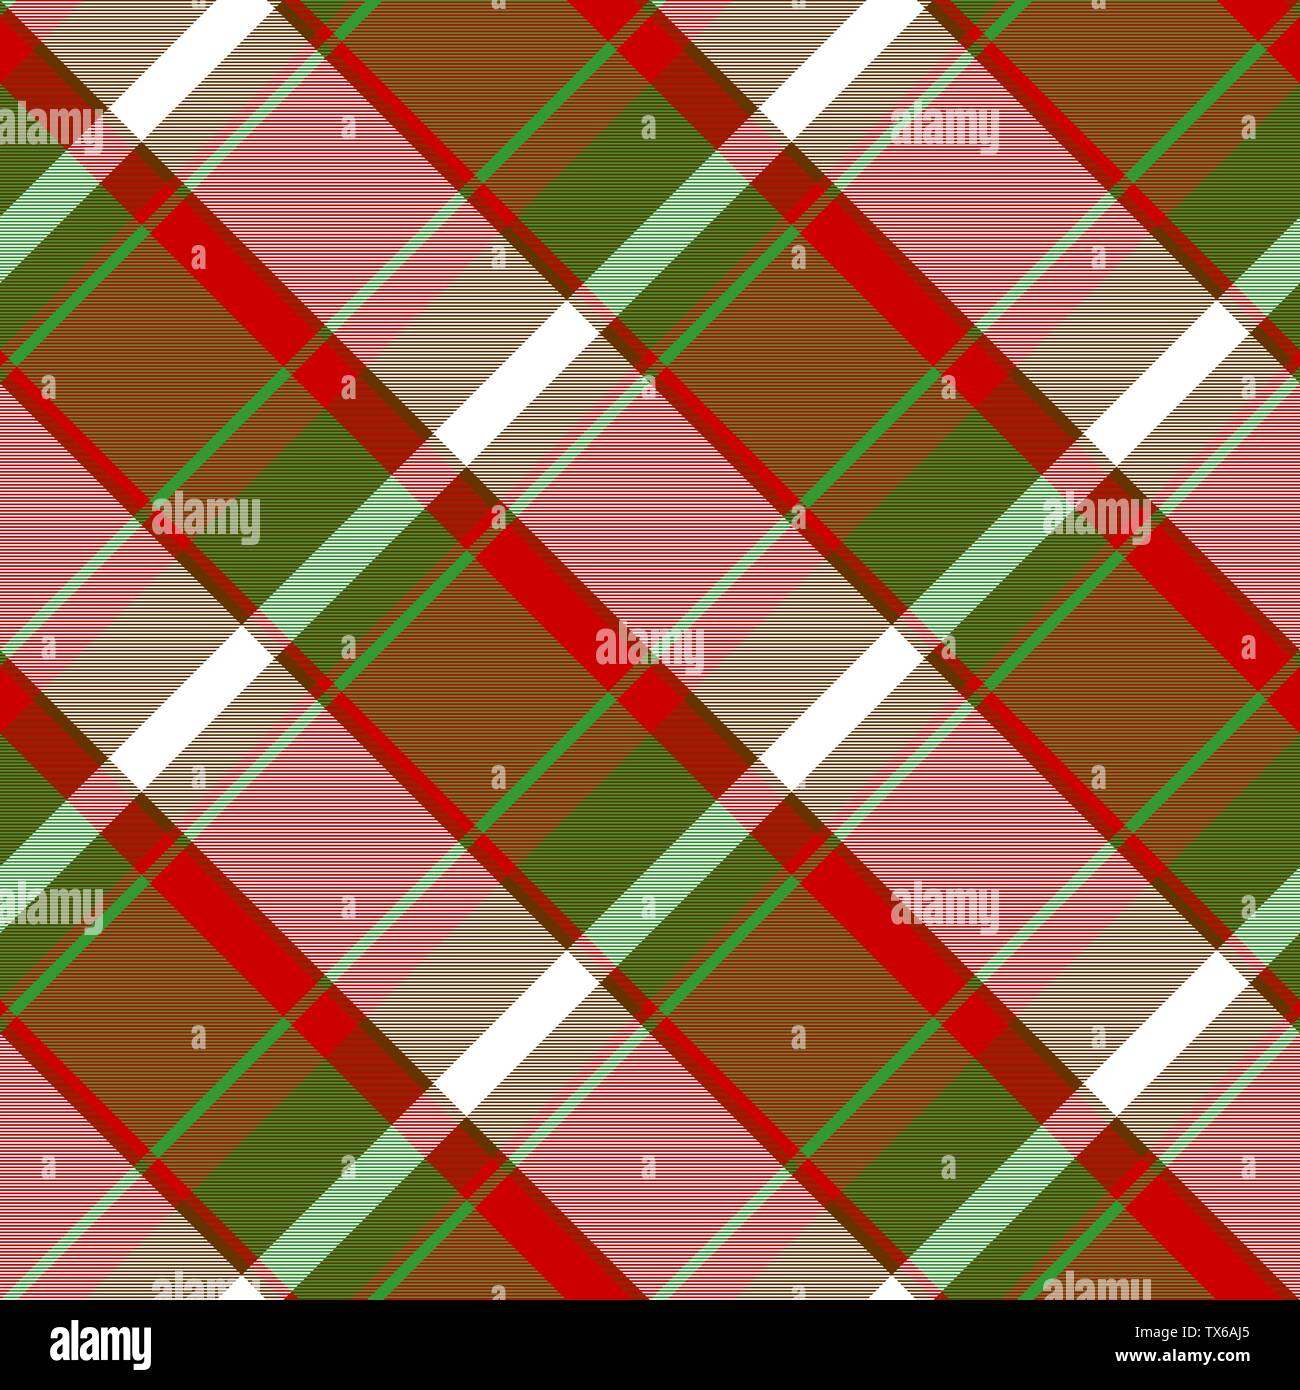 Color plaid fabric texture seamless pattern. Vector illustration. - Stock Vector